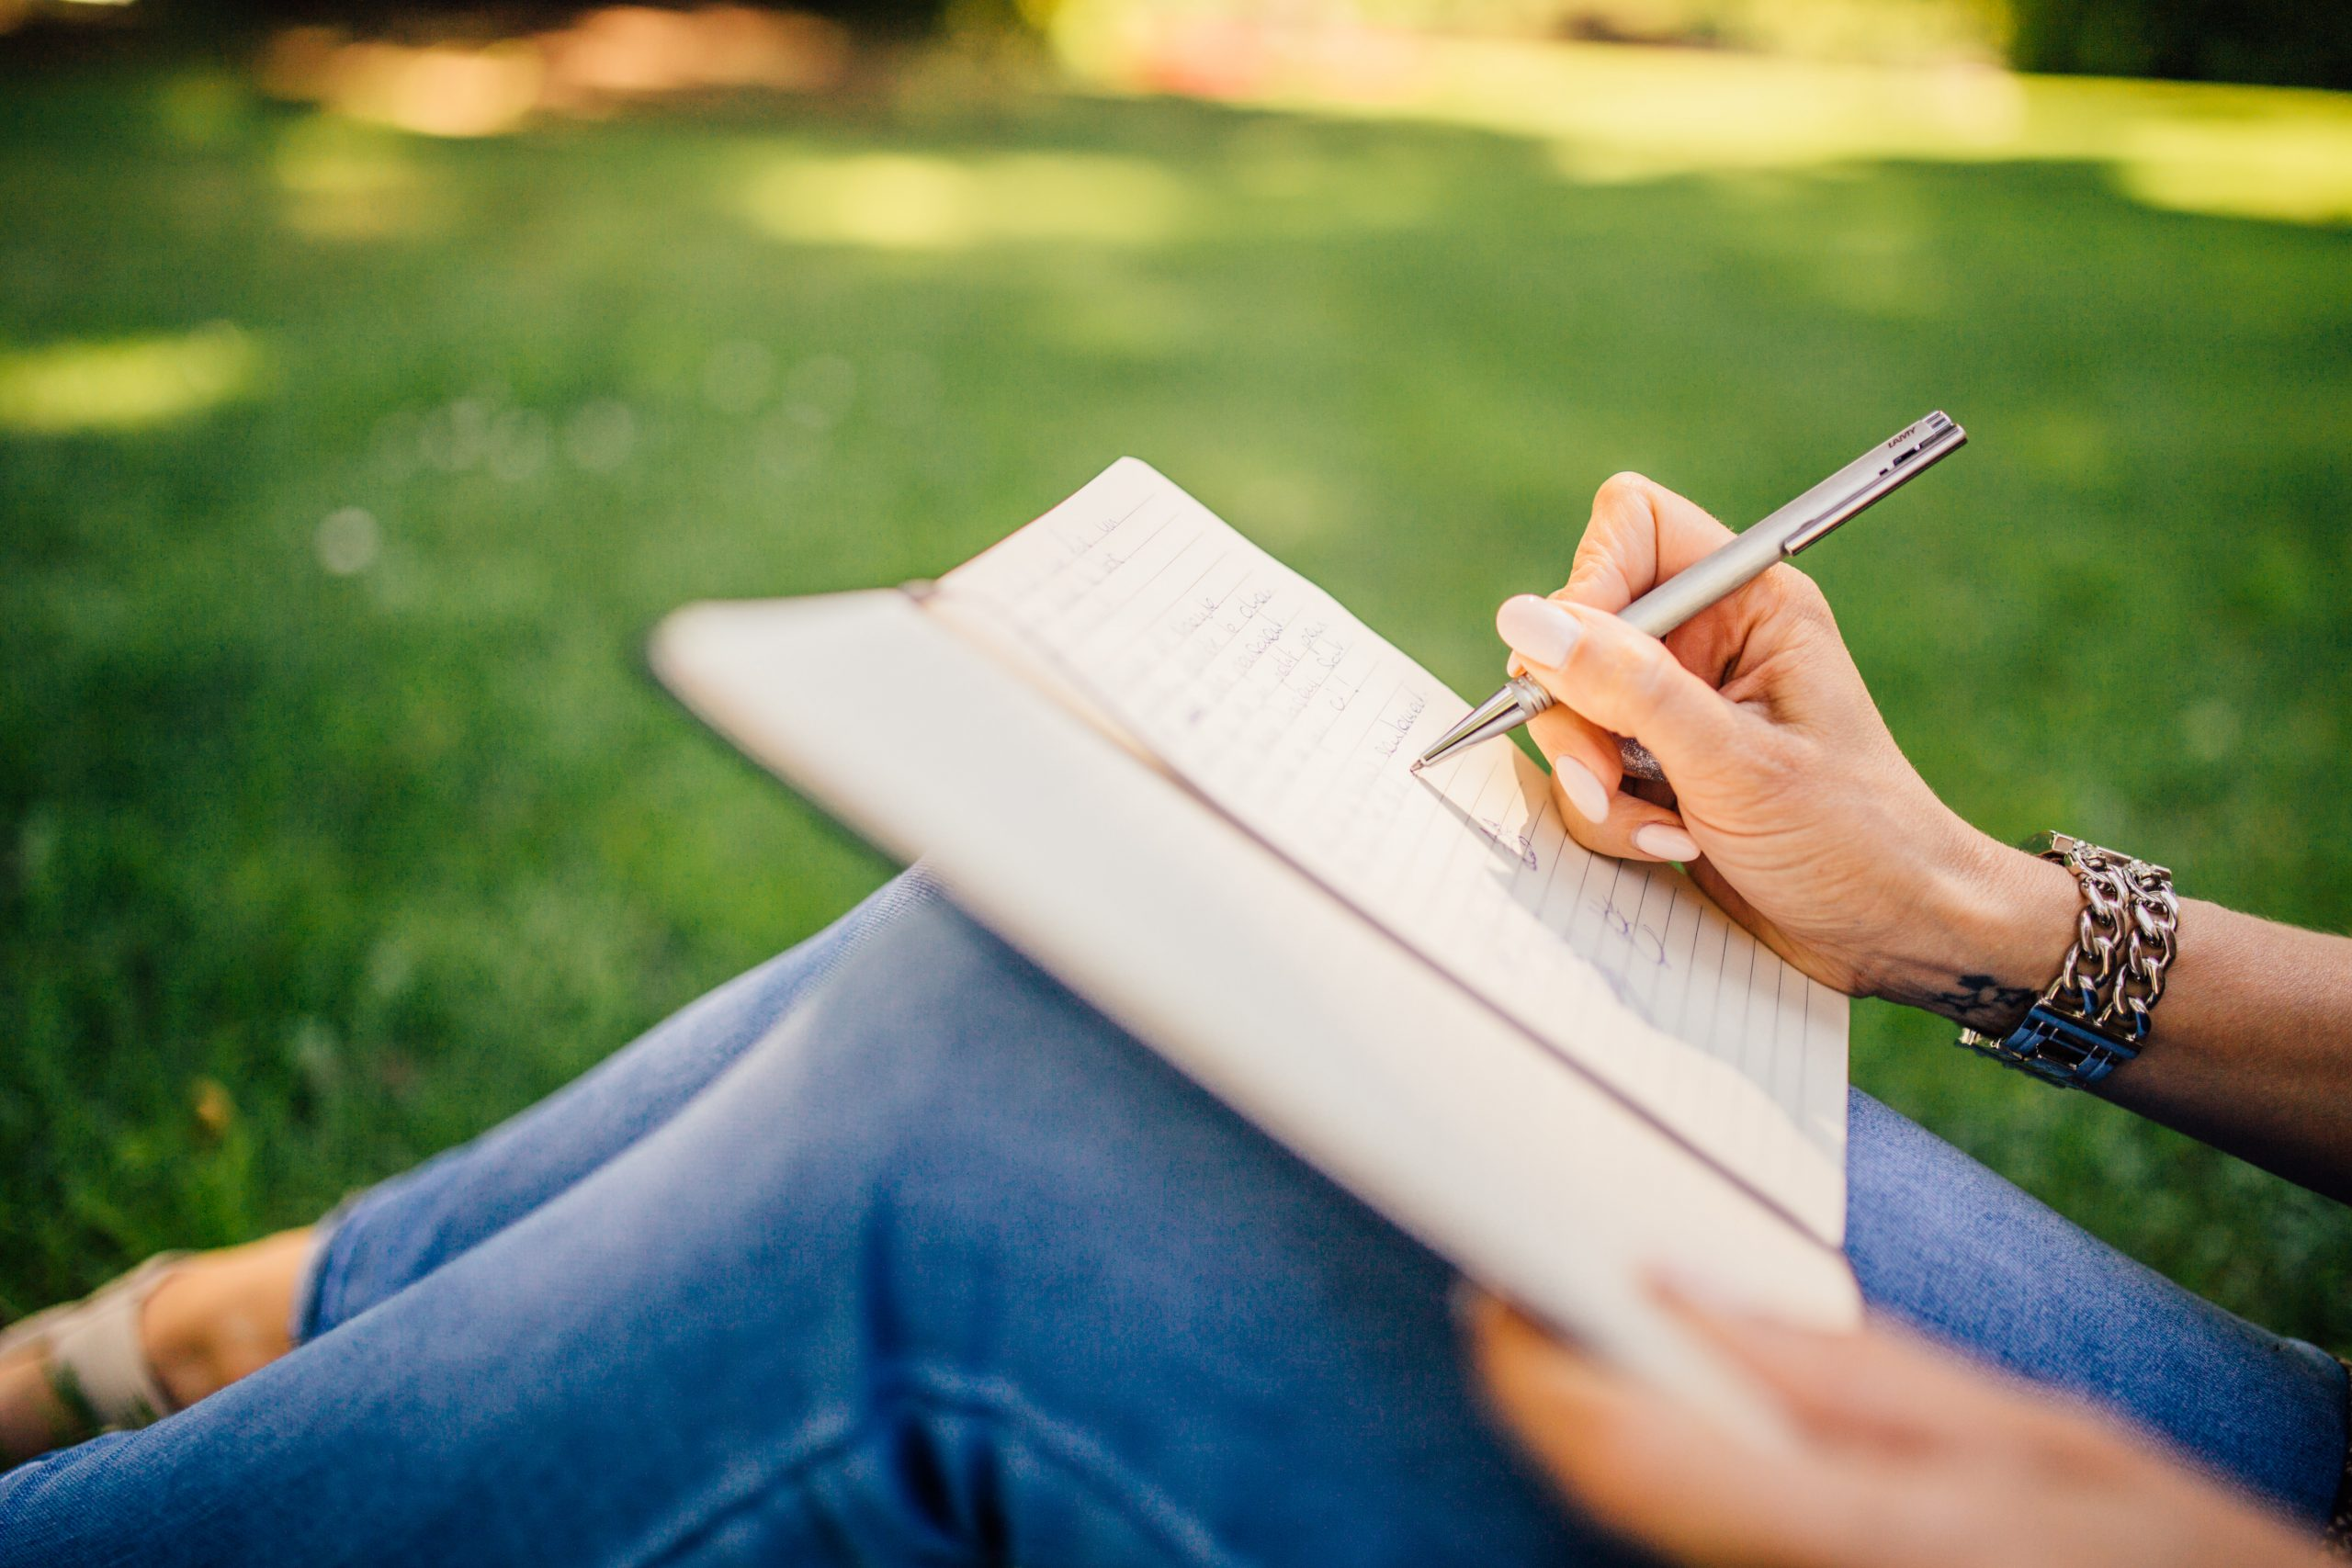 Person writing on a notebook that is resting on their knees. Only the legs and hands are visible.